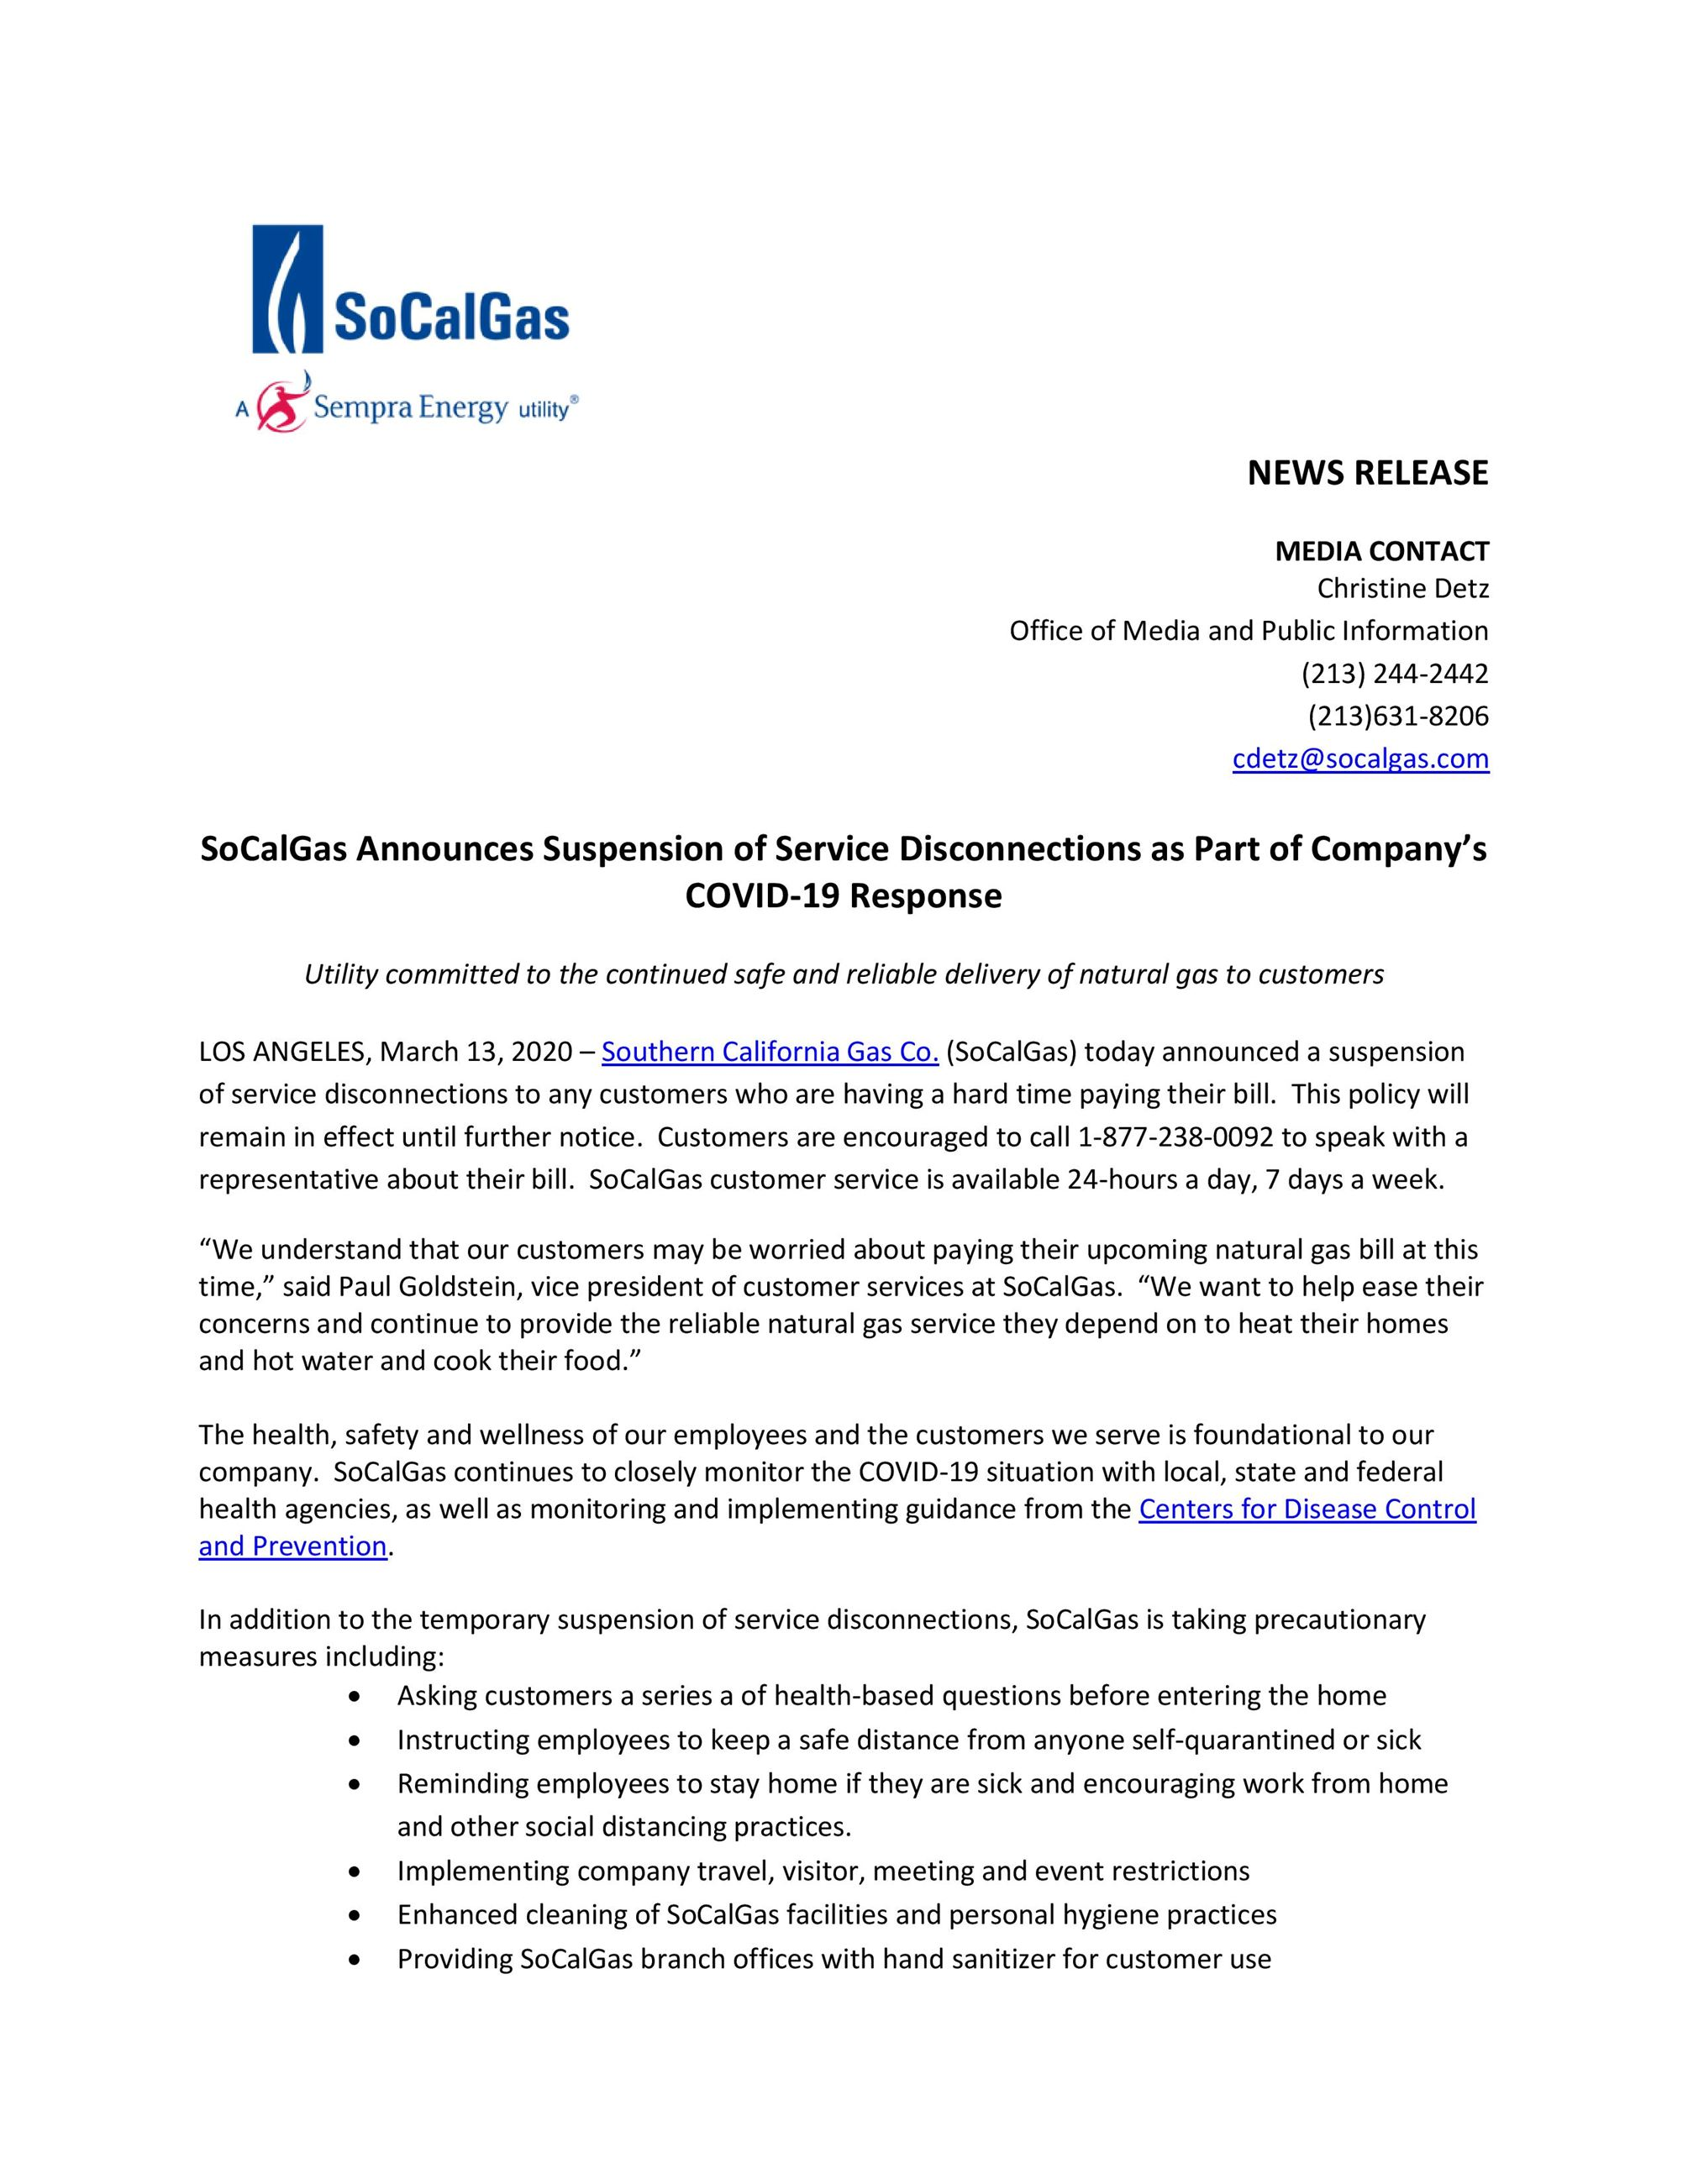 socalgas suspension Opens in new window